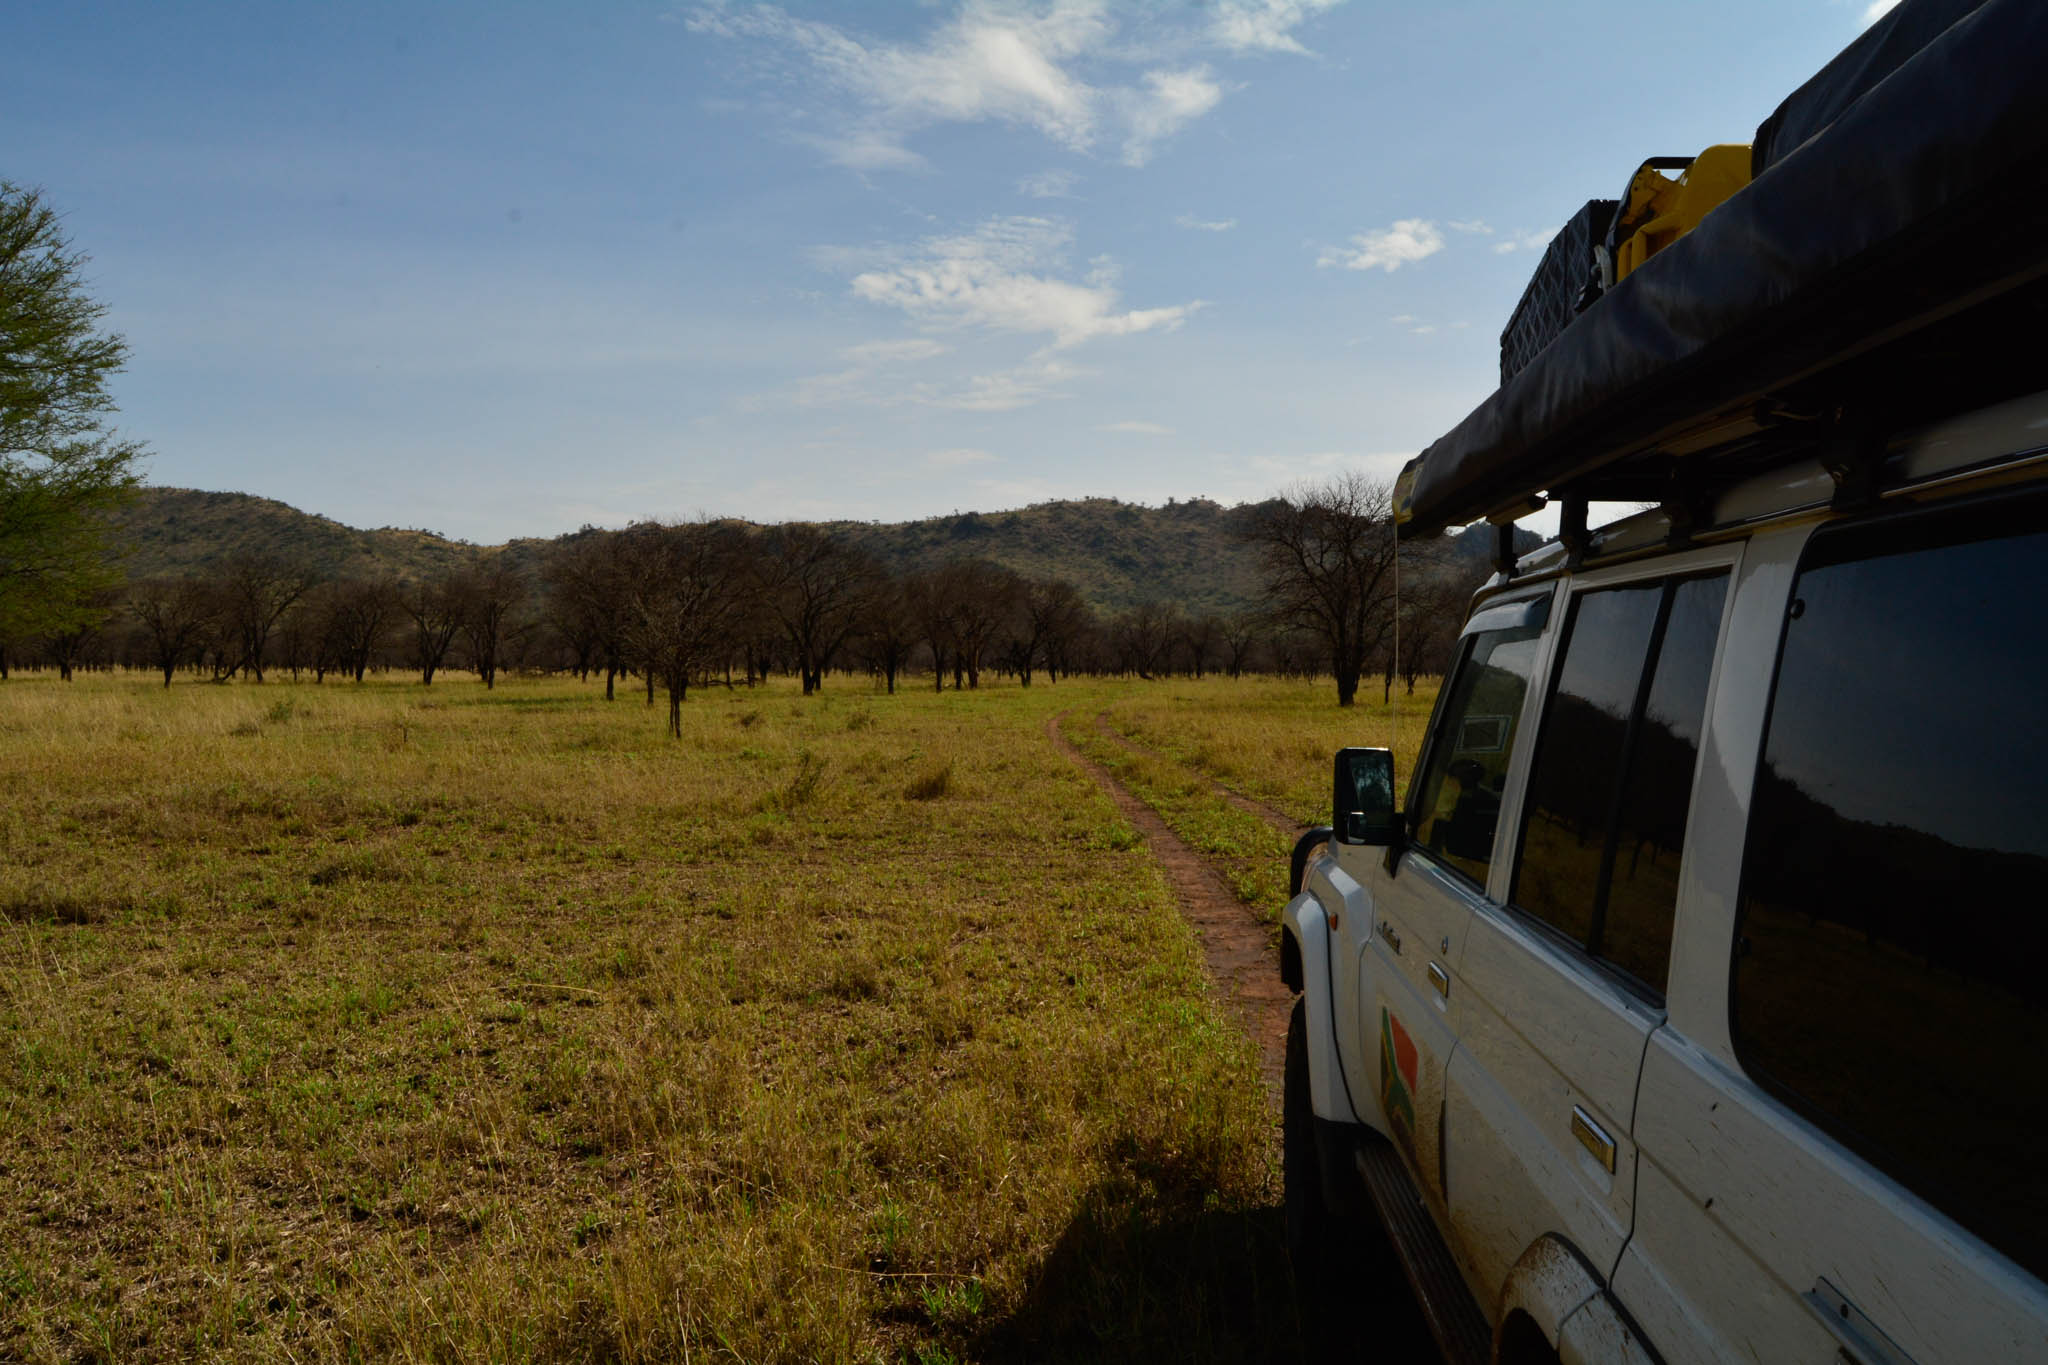 We took this circular route off the main road in Serengeti which was really quite